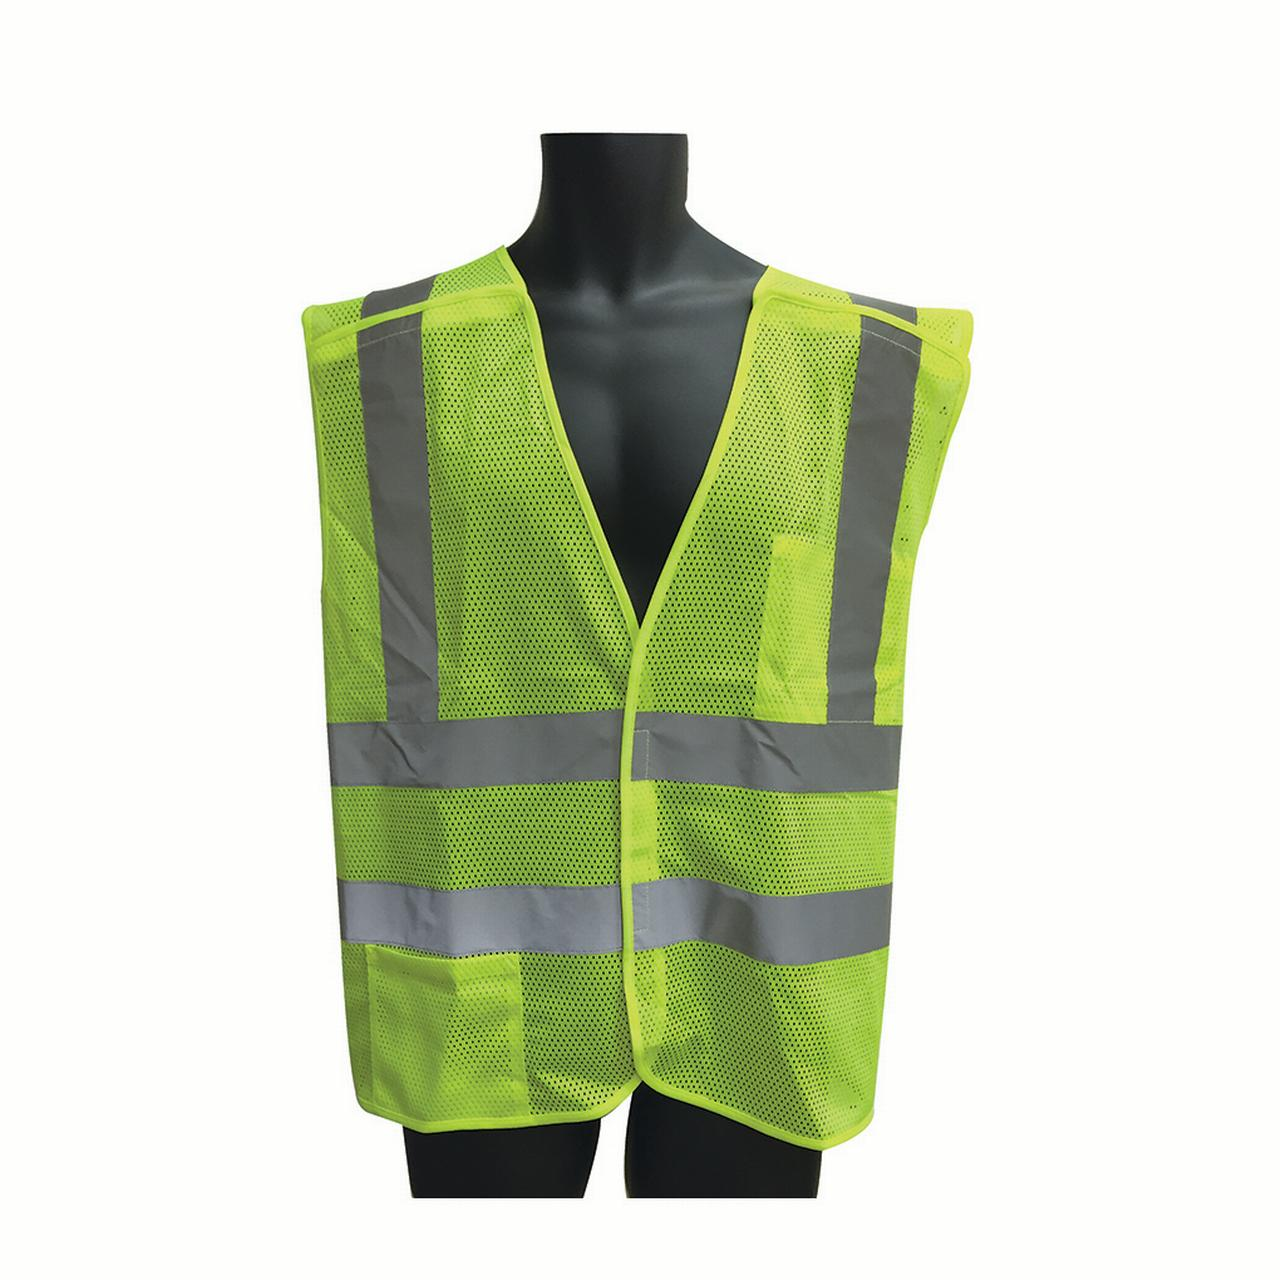 Class II, 5-Point Breakaway Vest Lime Green Mesh. Size: 4X-Large Lot of 1 Pack(s) of 1 Unit